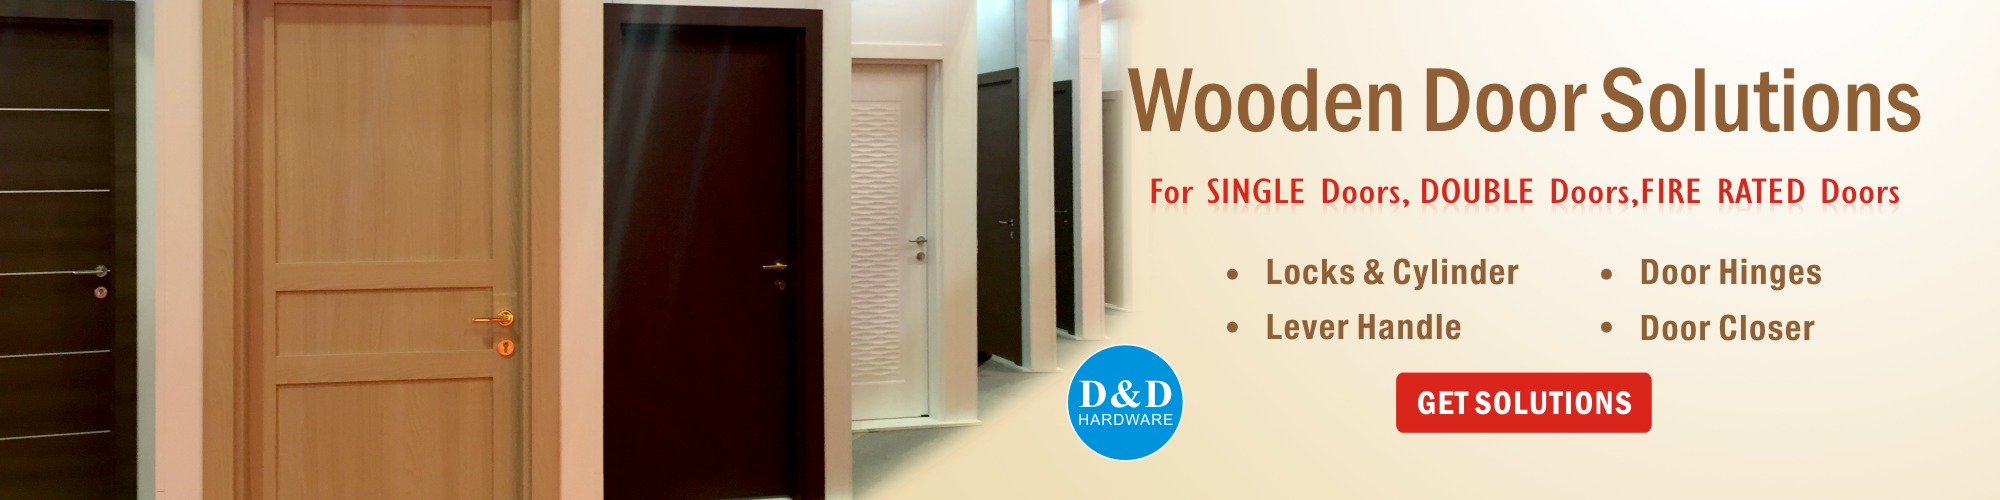 Wooden Door Solutions-D&D hardware manufacturer